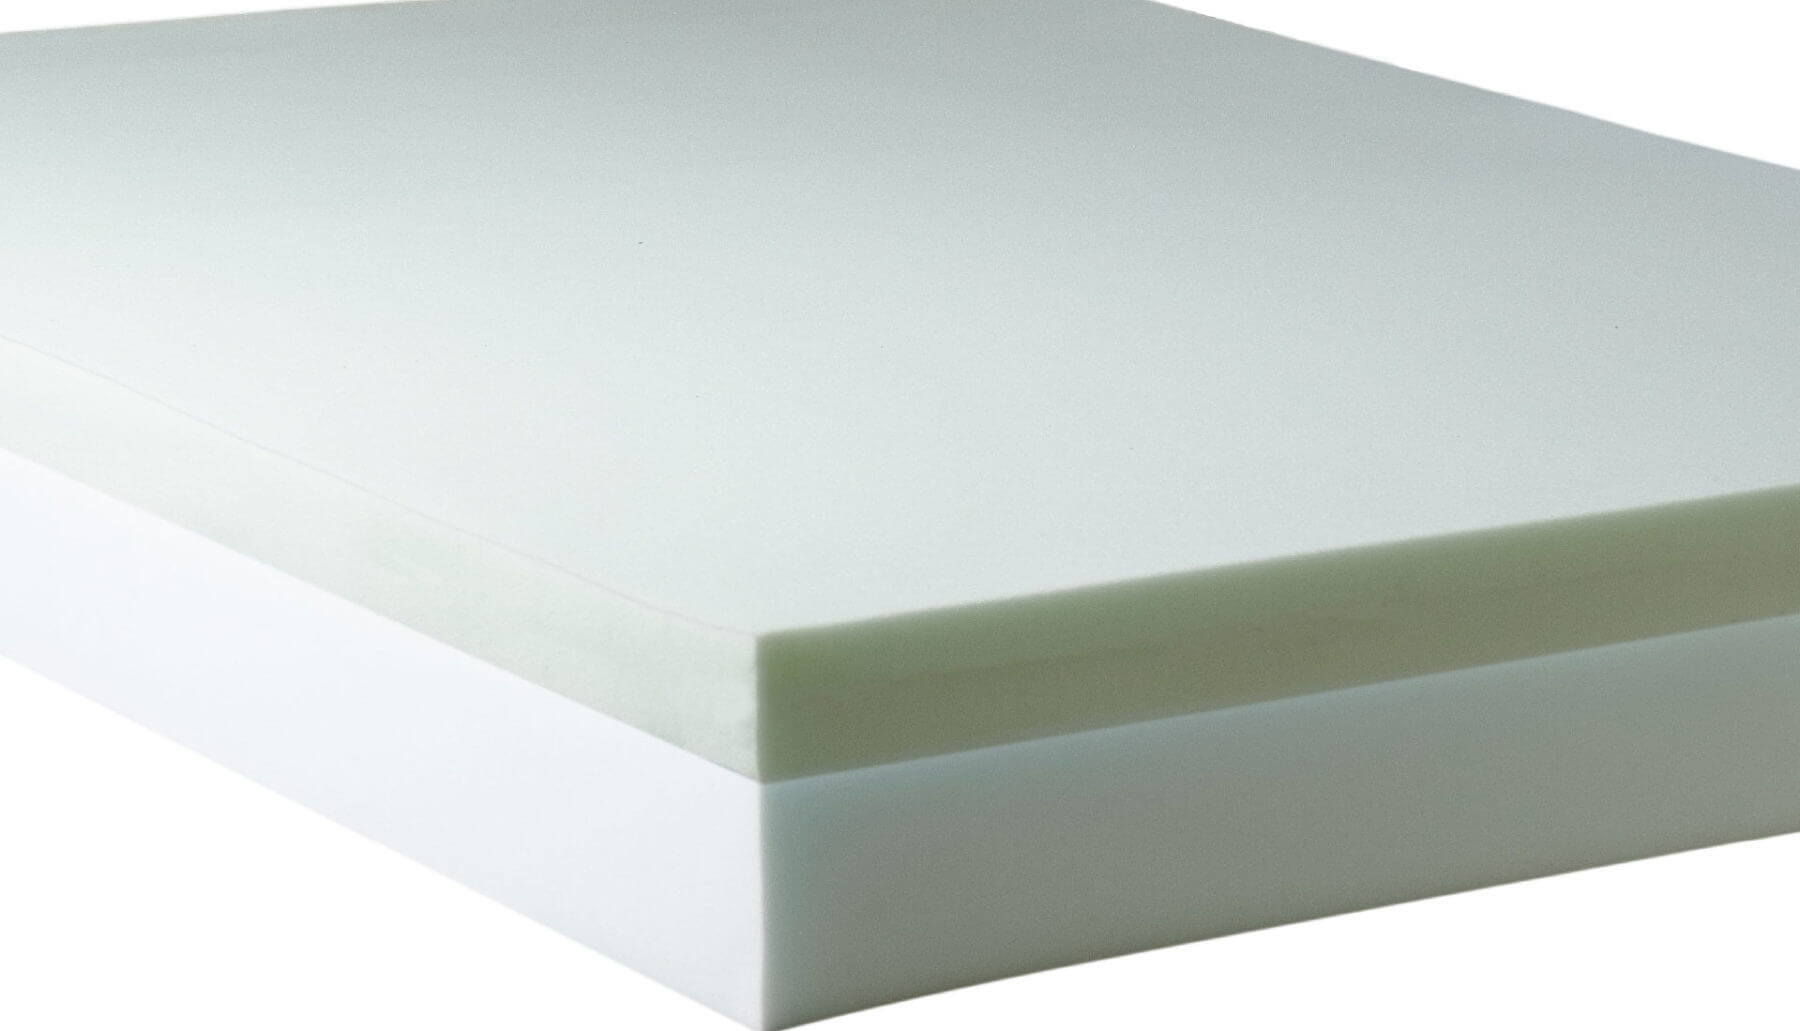 juna-choice-series-mattress-1